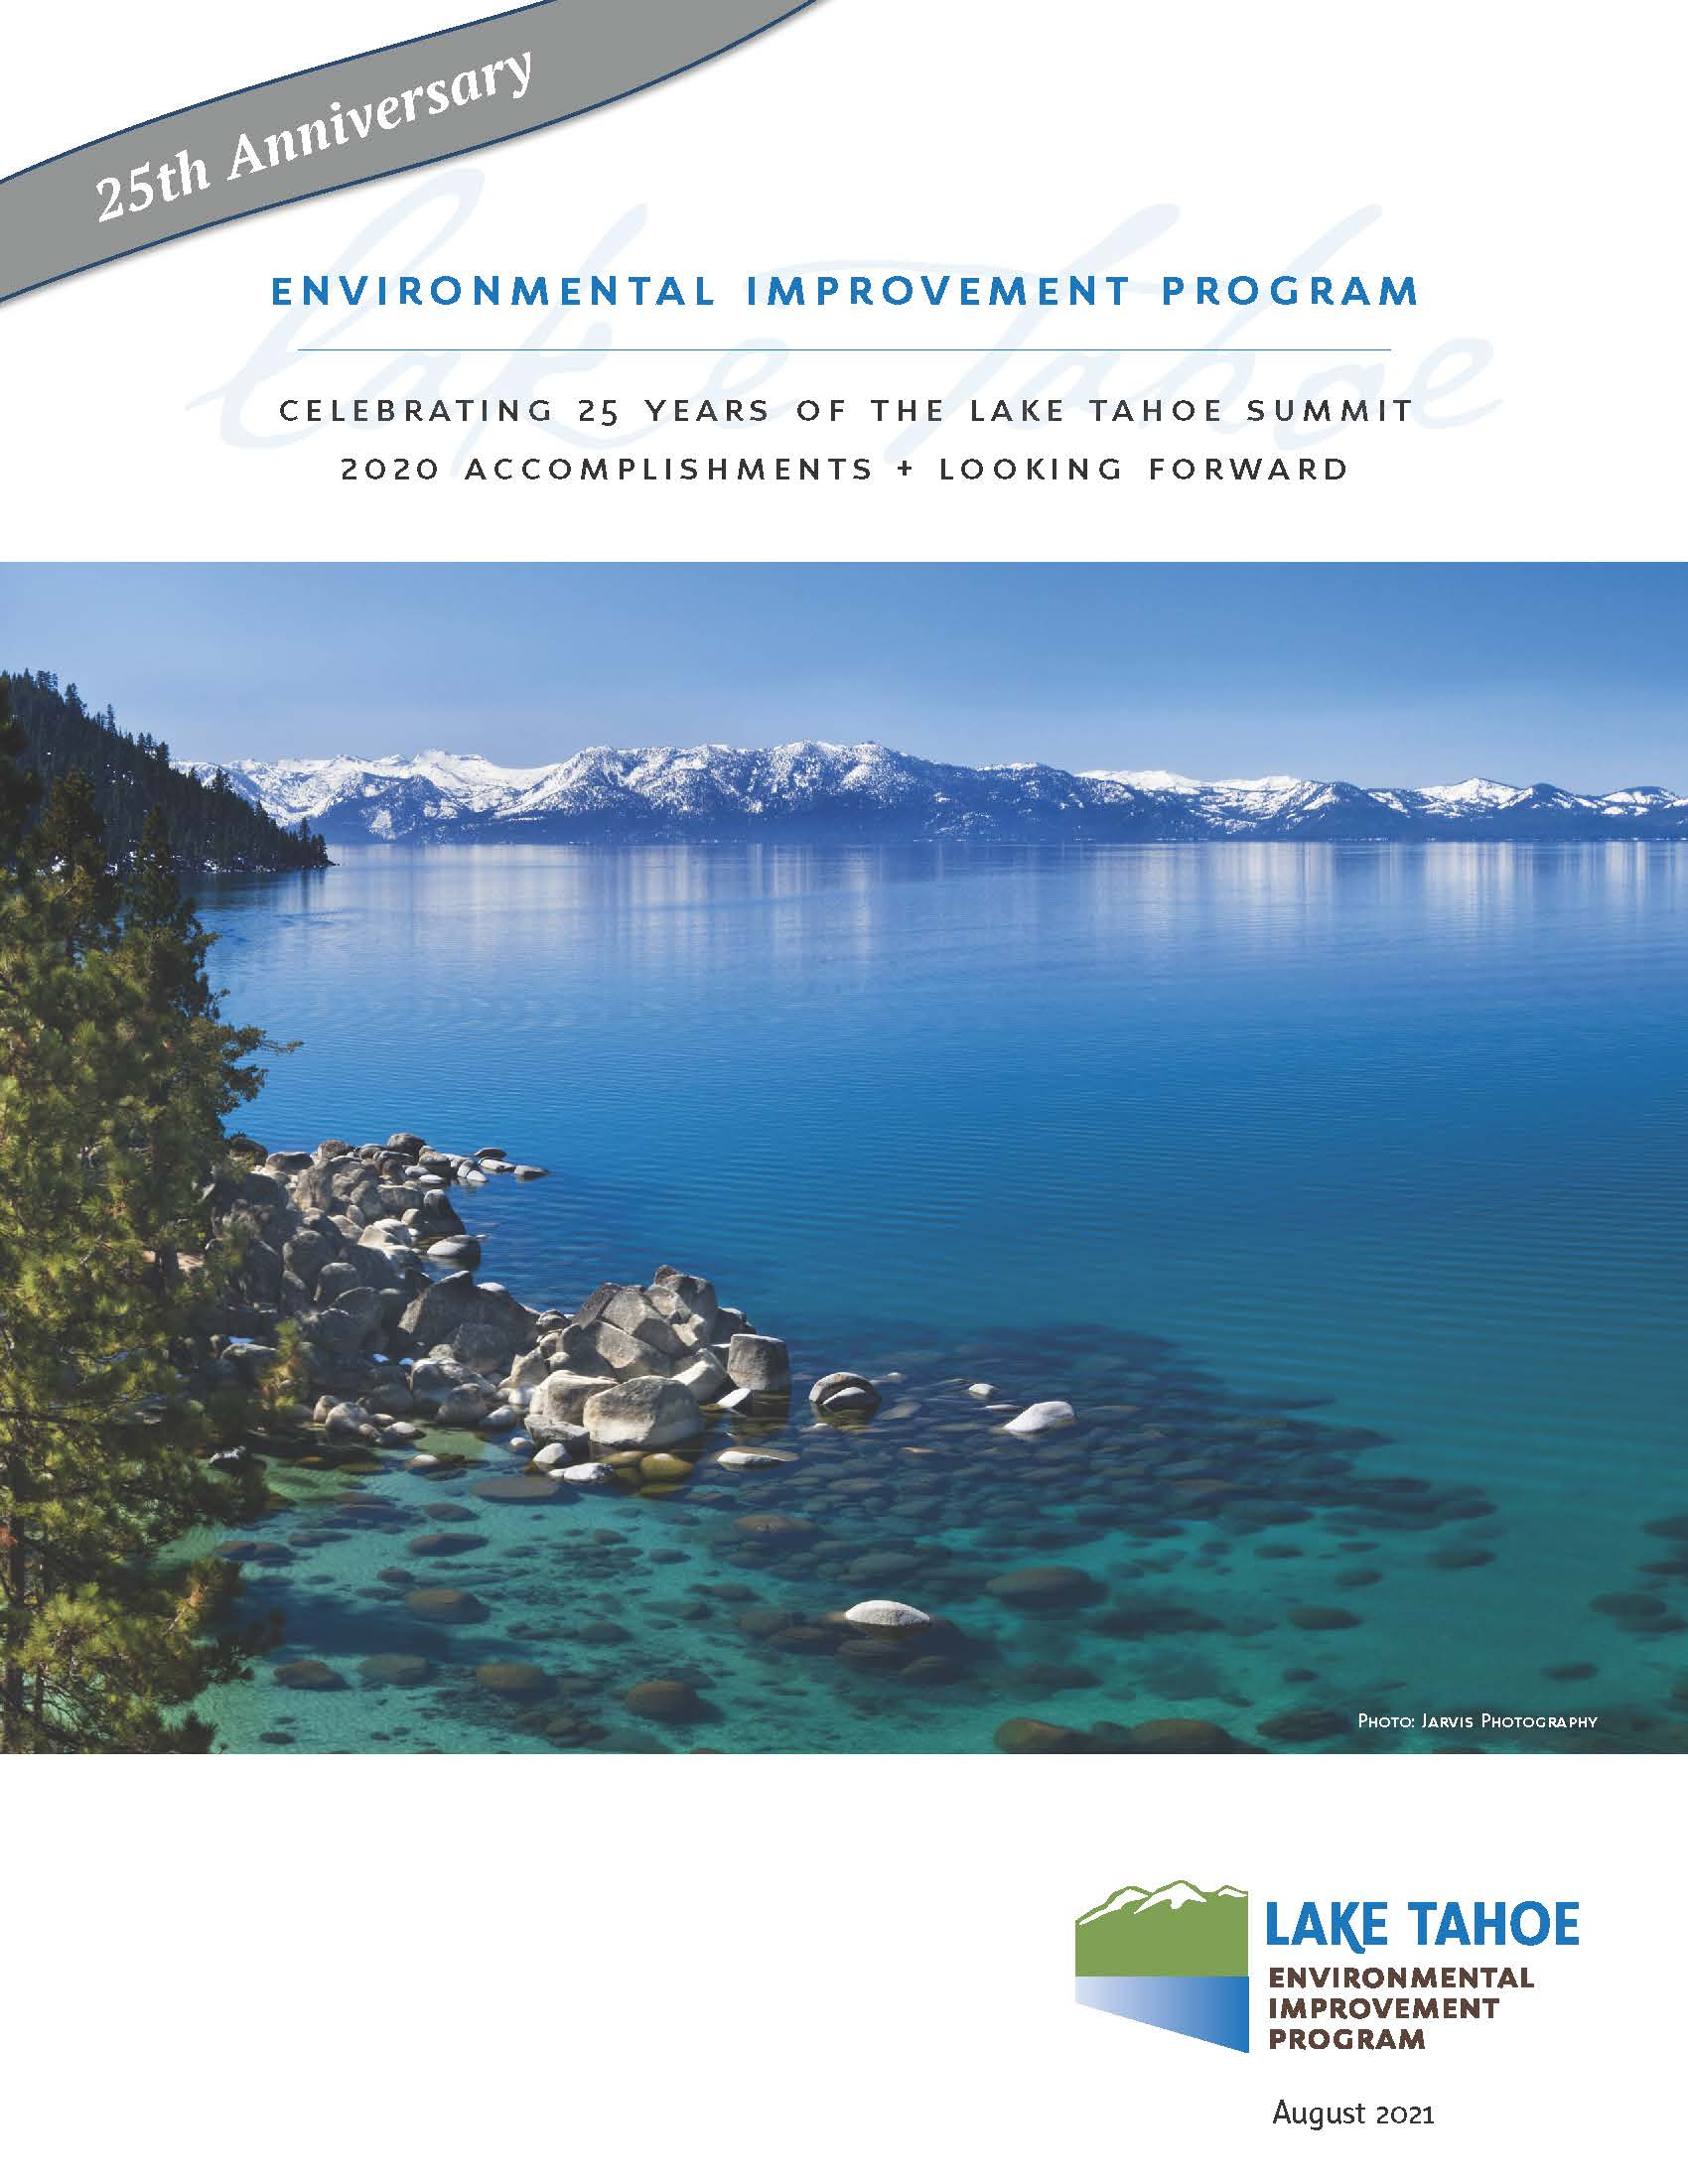 Cover page of EIP 2020 Accomplishments Piece